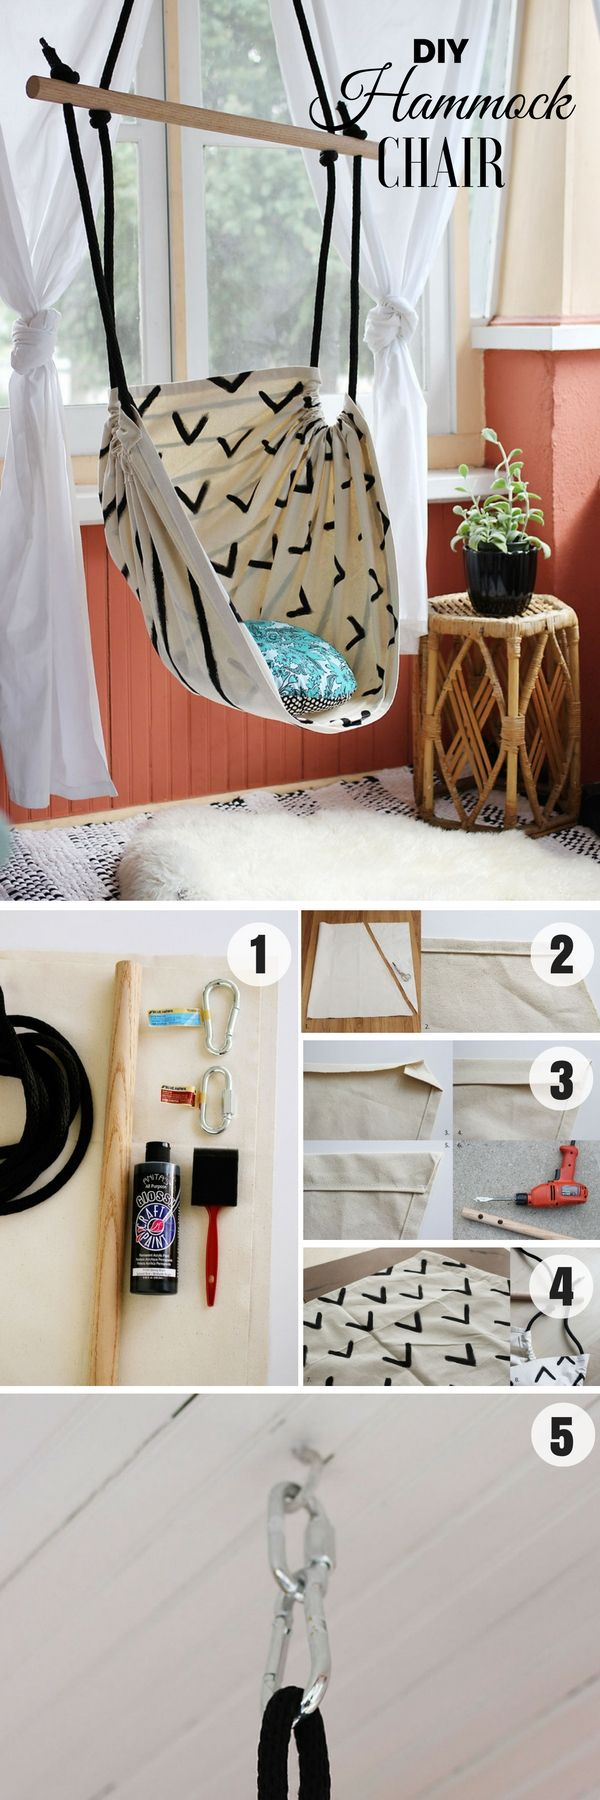 Do It Yourself Bedroom Decorations diy bedroom design ideas diy 16 Beautiful Diy Bedroom Decor Ideas That Will Inspire You